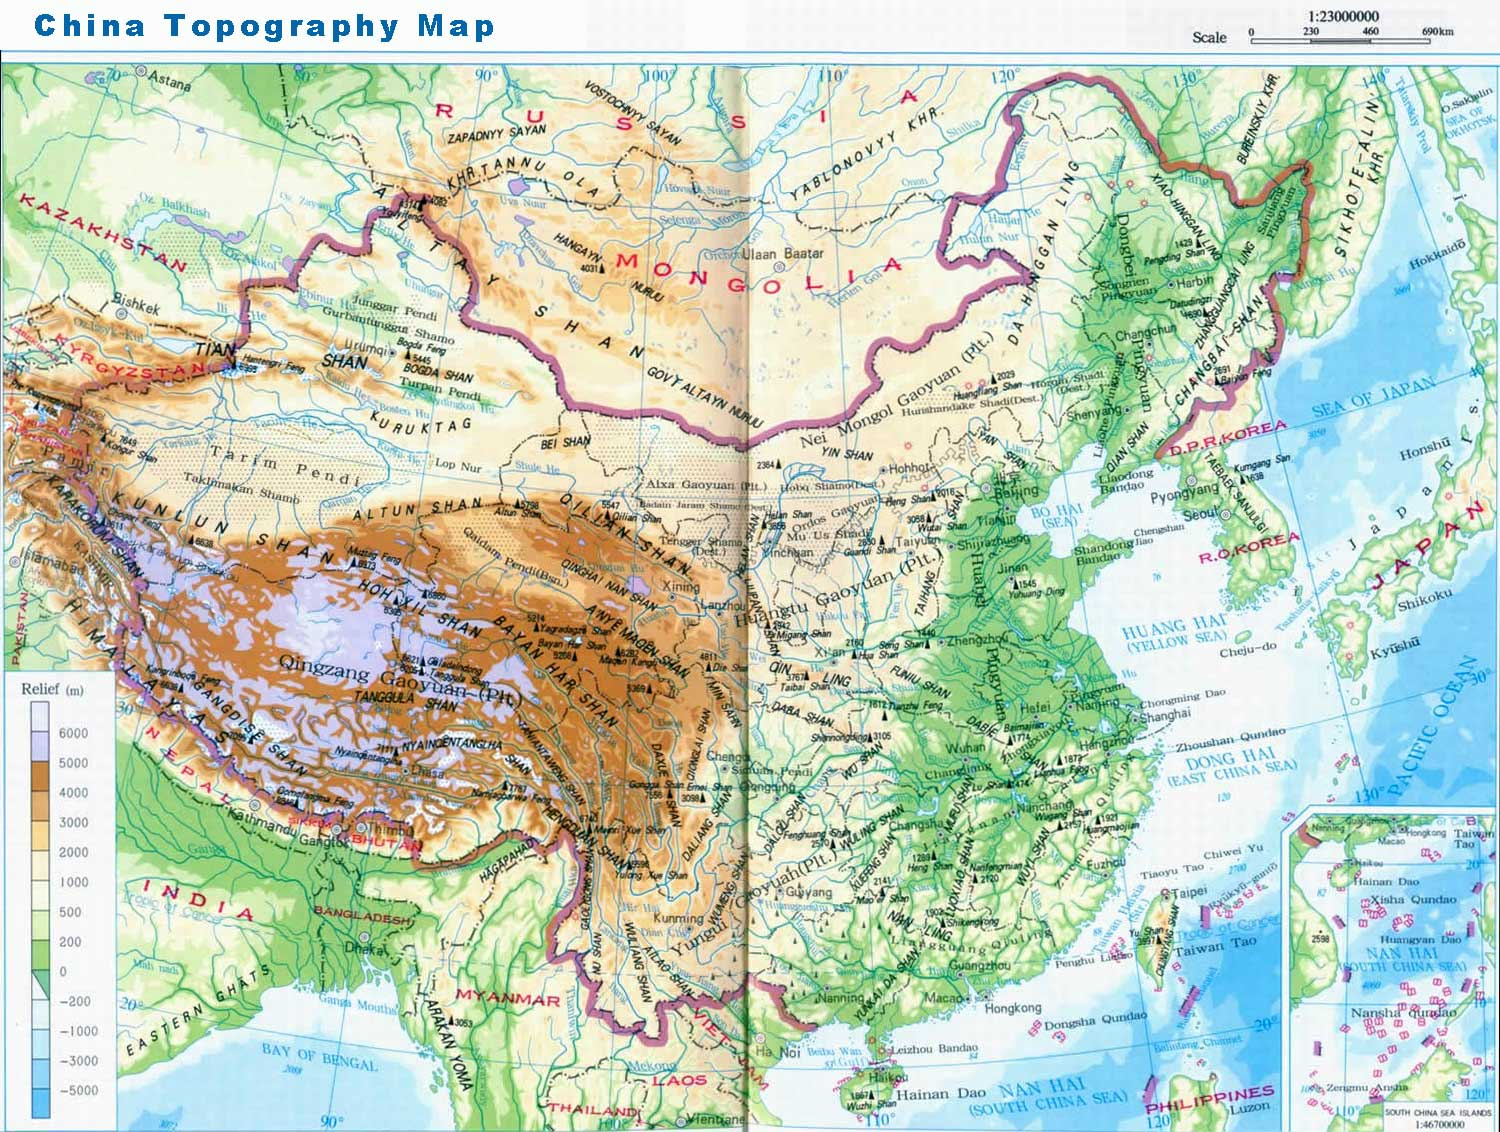 China topography, topography of China   China tour background